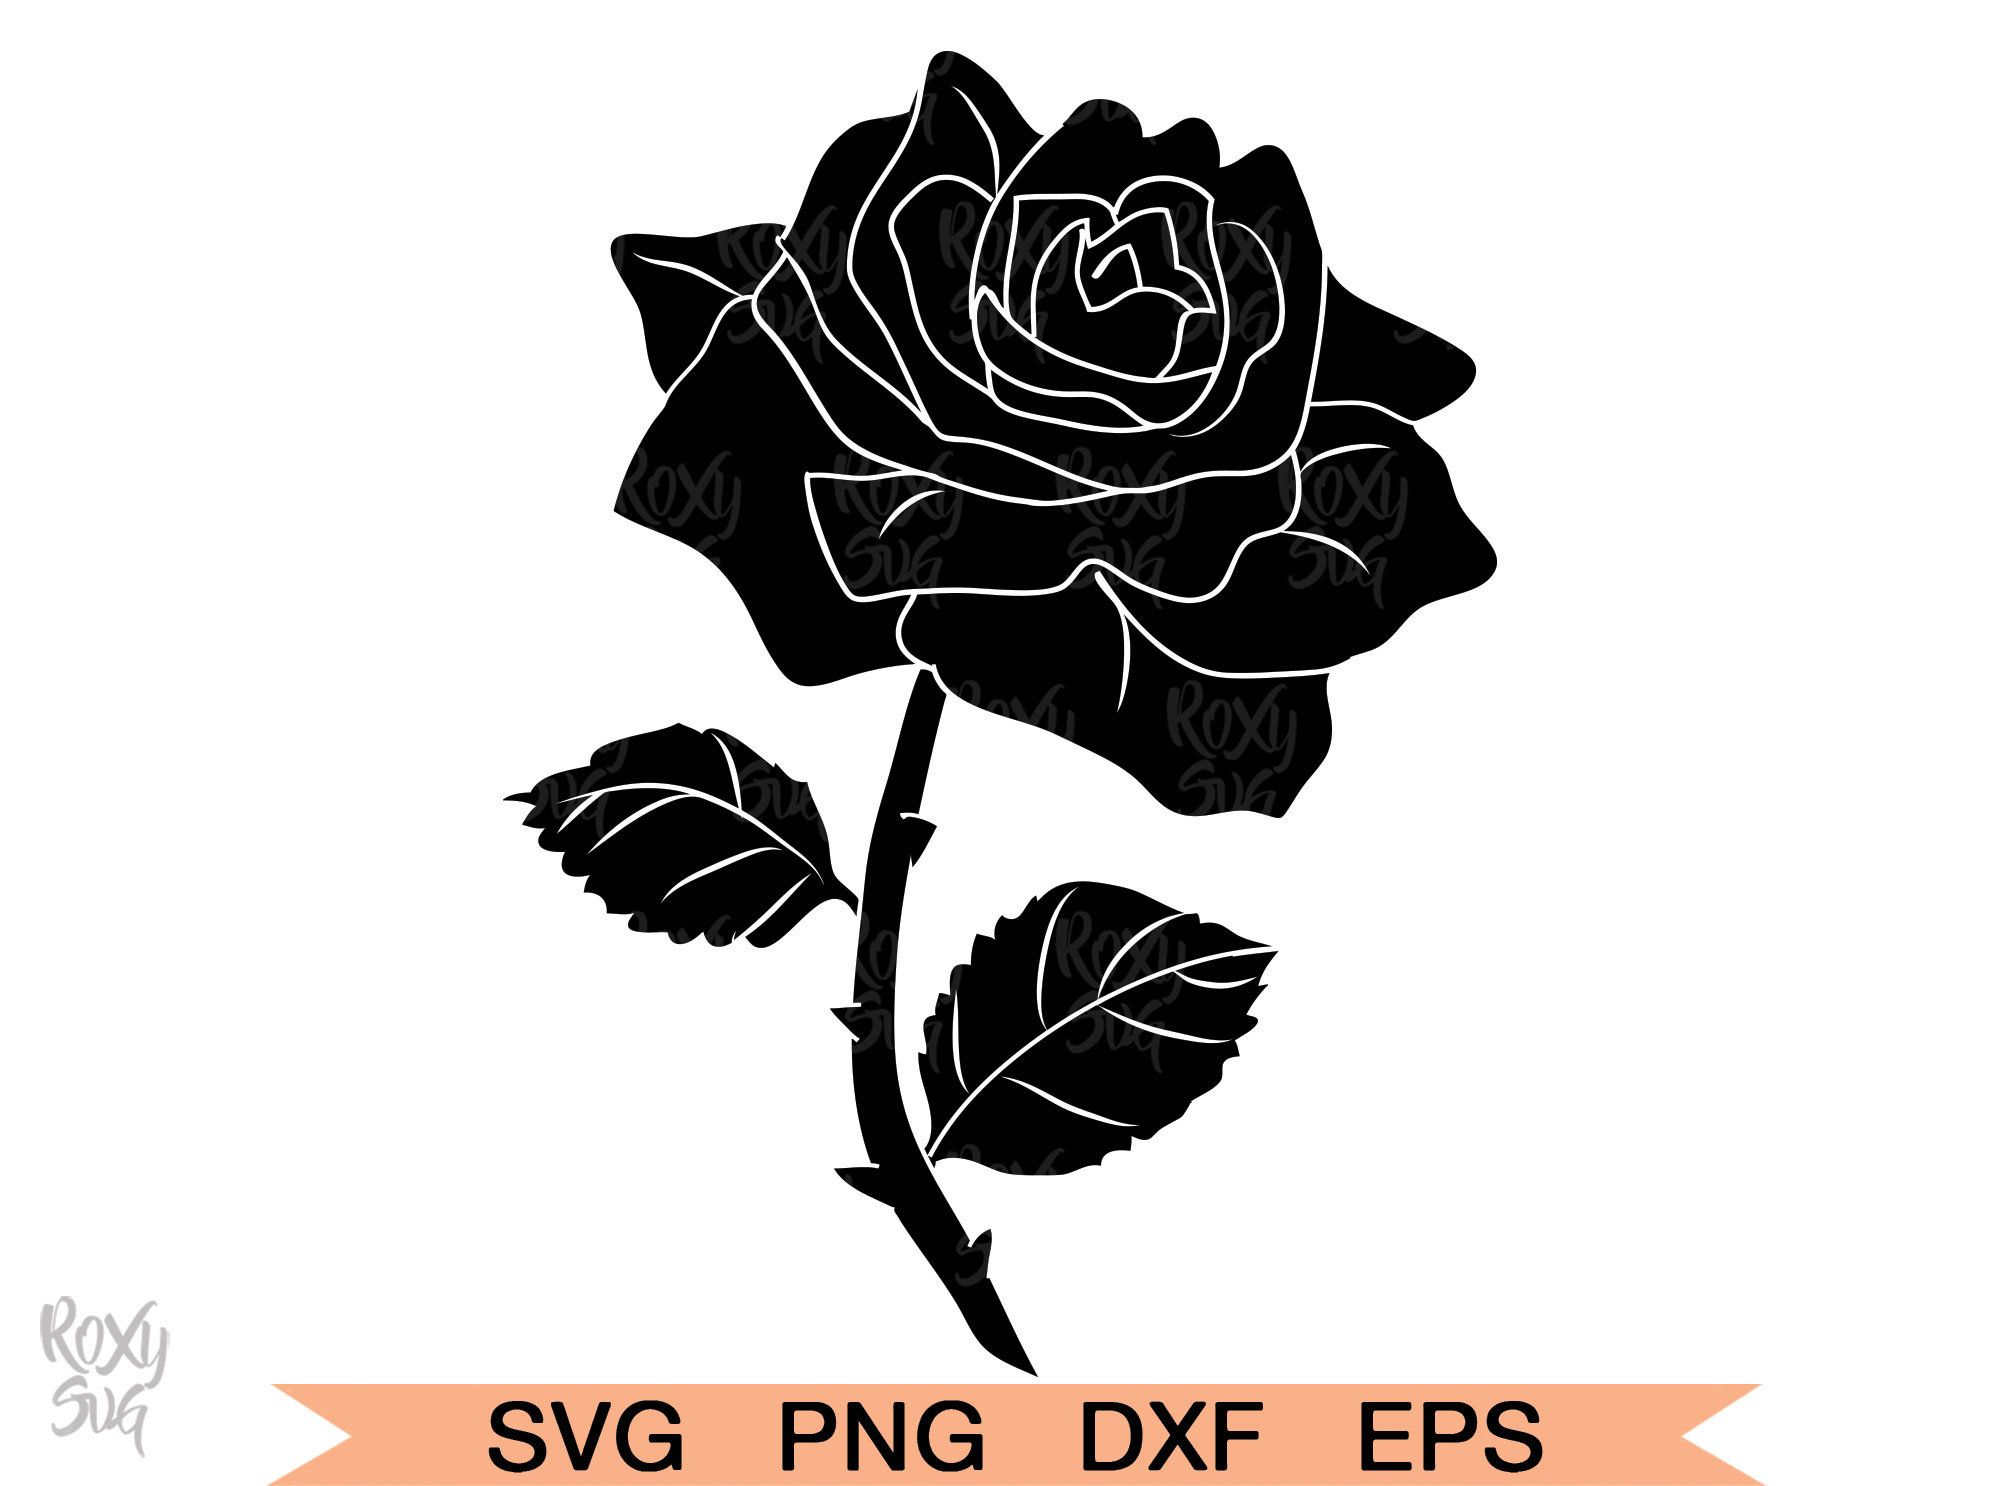 Rose Flower Svg Rose Clipart Rose Png Rose Clip Art Etsy In 2020 Rose Clipart Flower Svg Clip Art